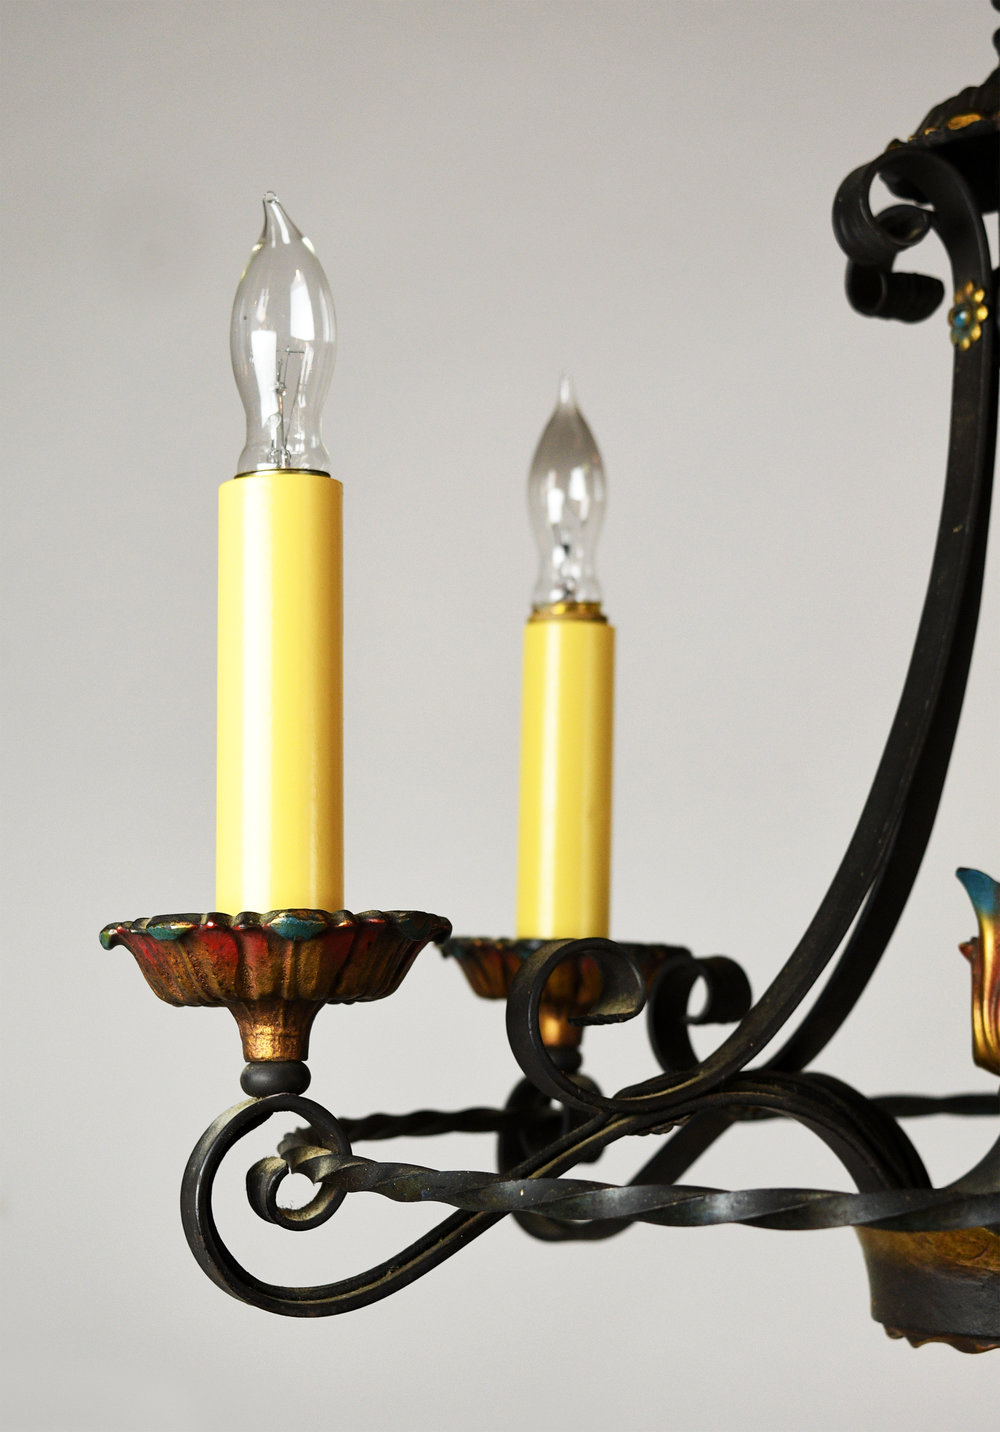 47819-5-candle-iron-polychrome-chandelier-6.jpg